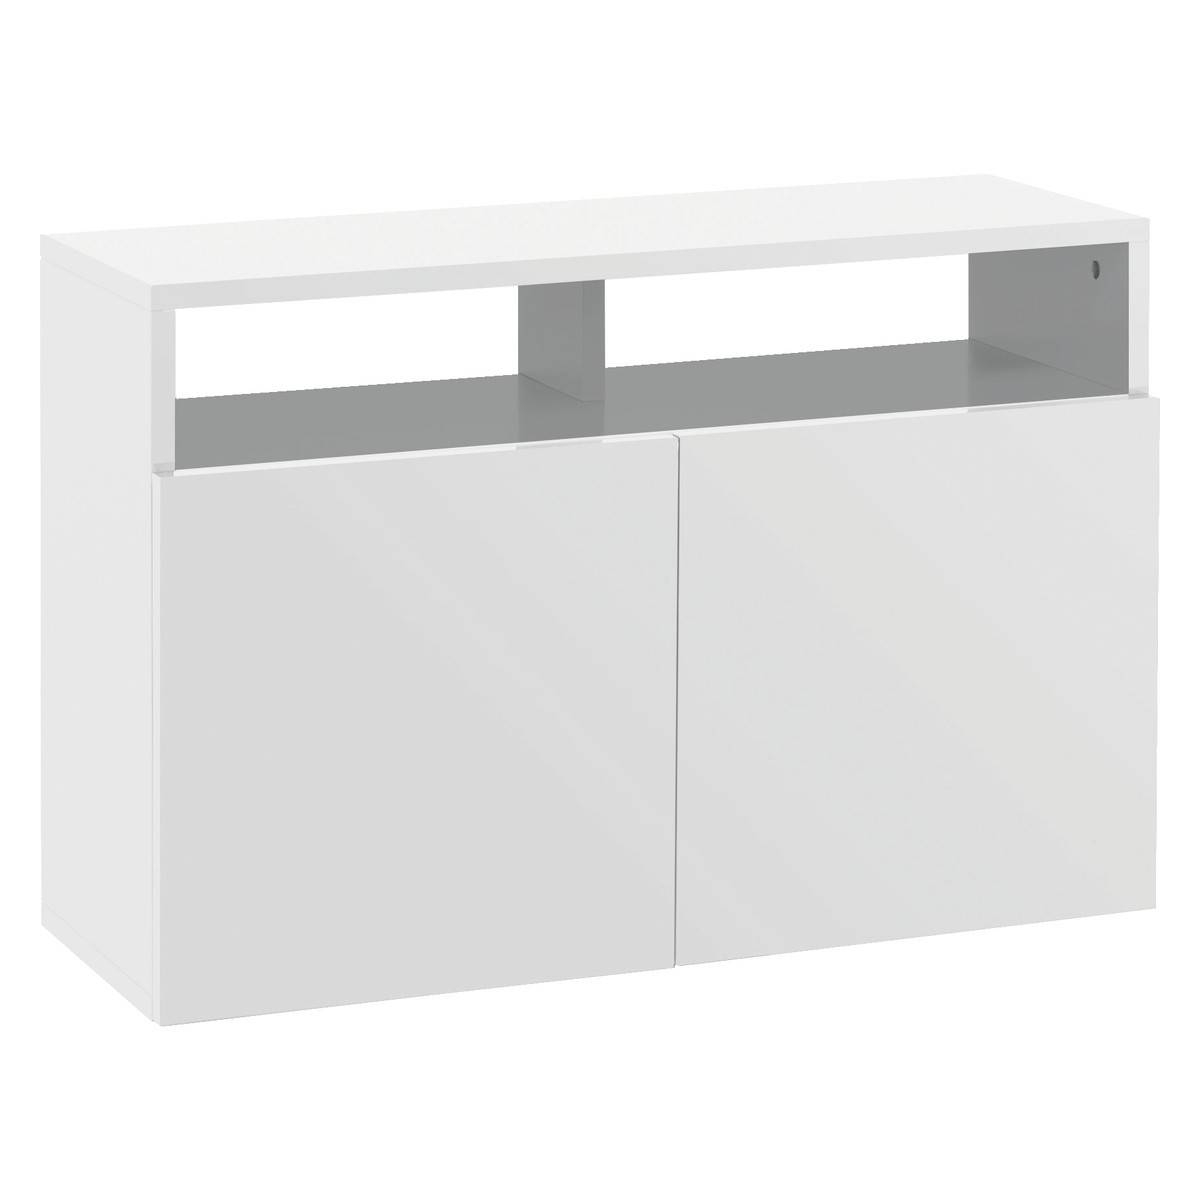 Kubrik White High Gloss Small Sideboard | Buy Now At Habitat Uk pertaining to Small White Sideboards (Image 10 of 30)